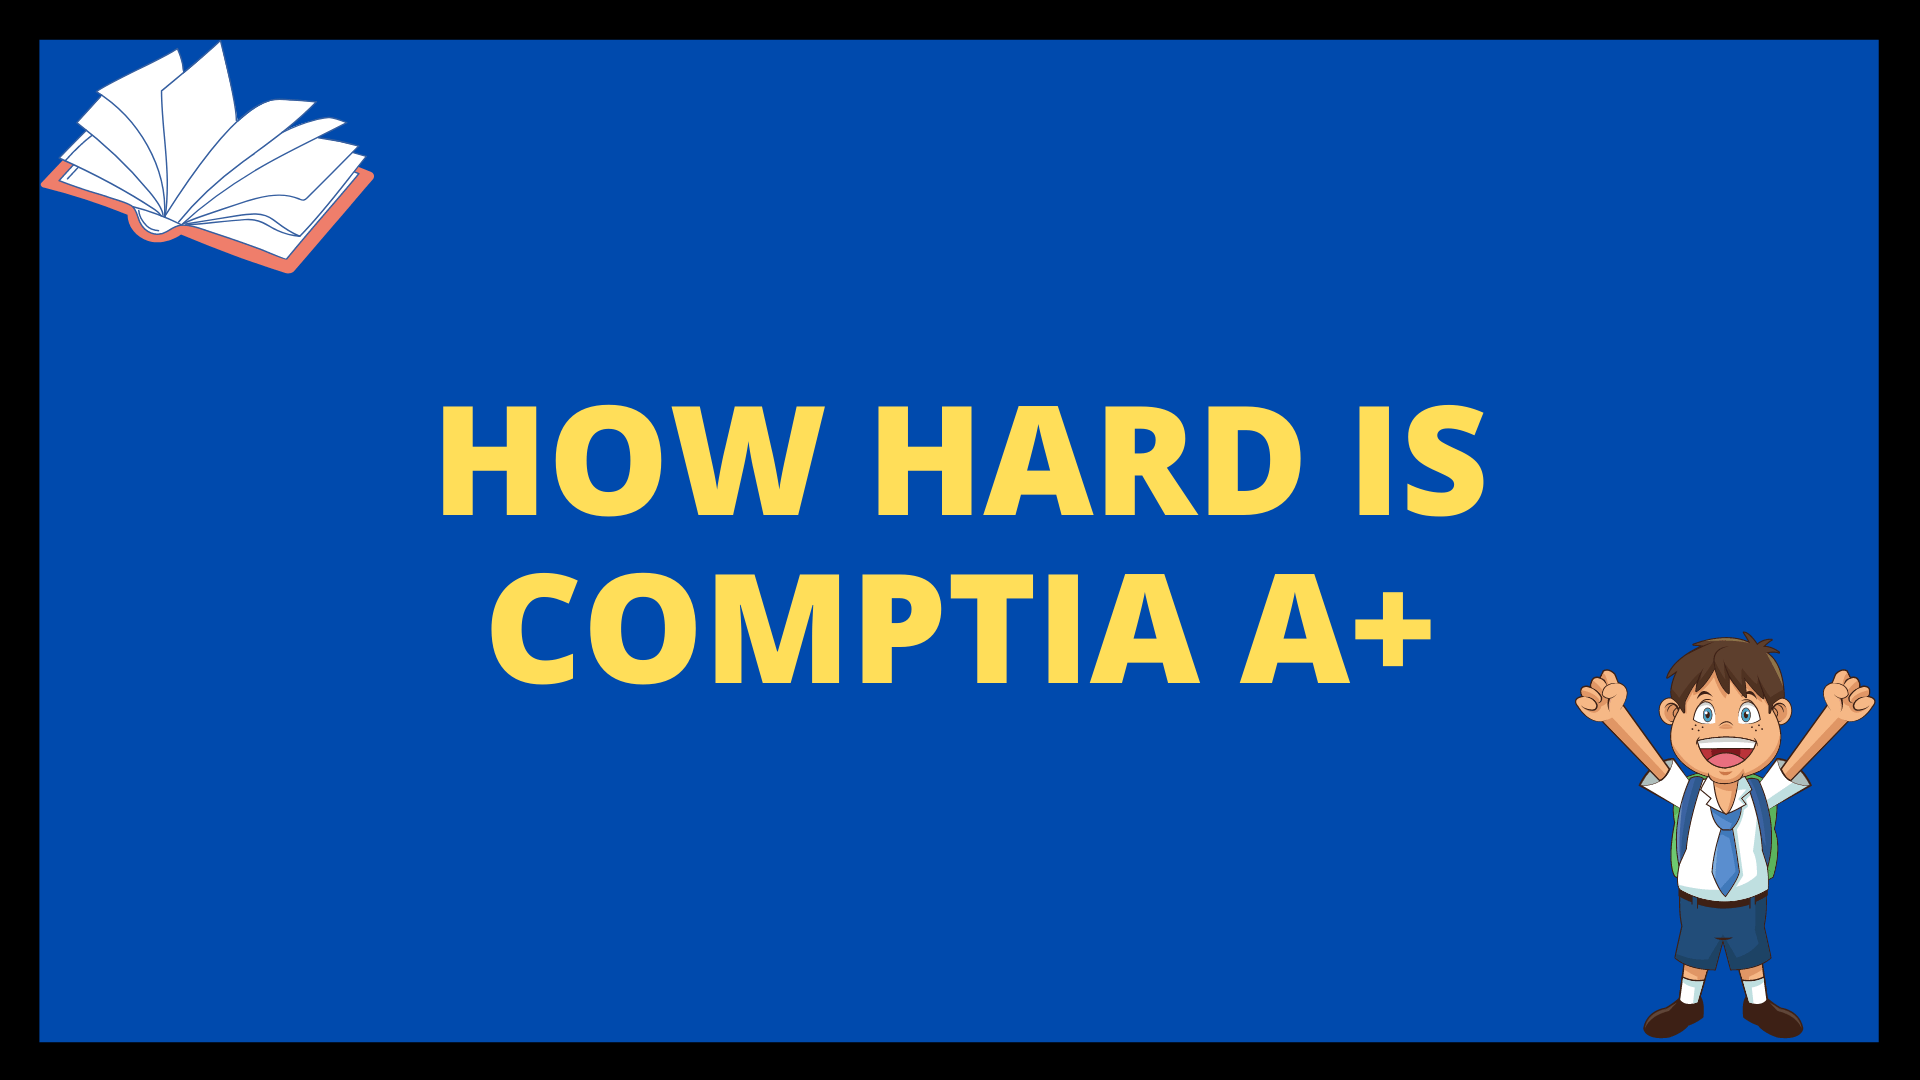 How Hard is Comptia A+